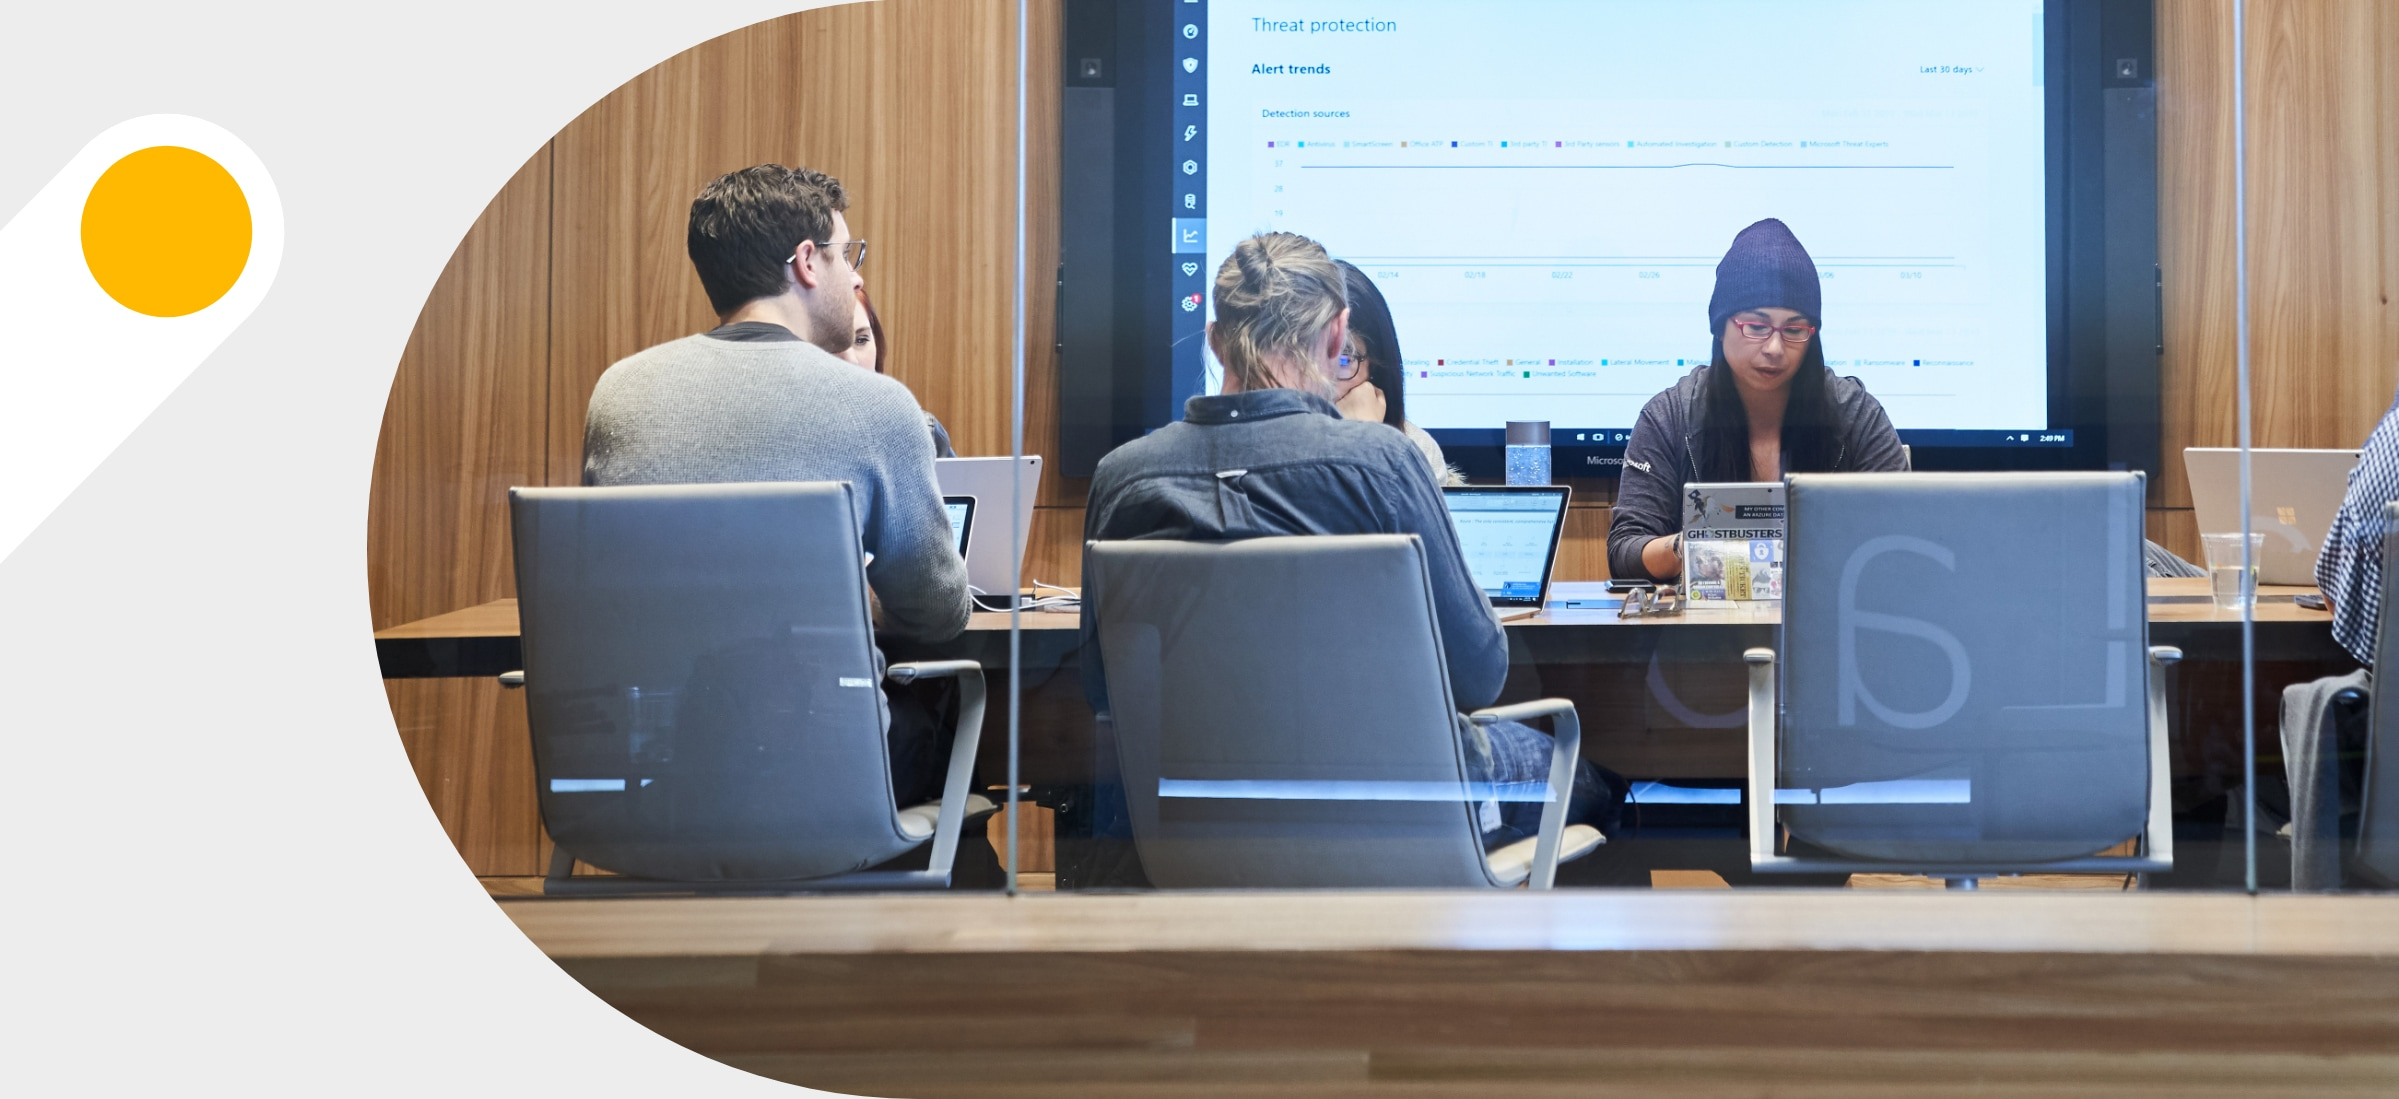 A meeting with 7 people in a conference room with a large screen on the back wall displaying notes in Teams.